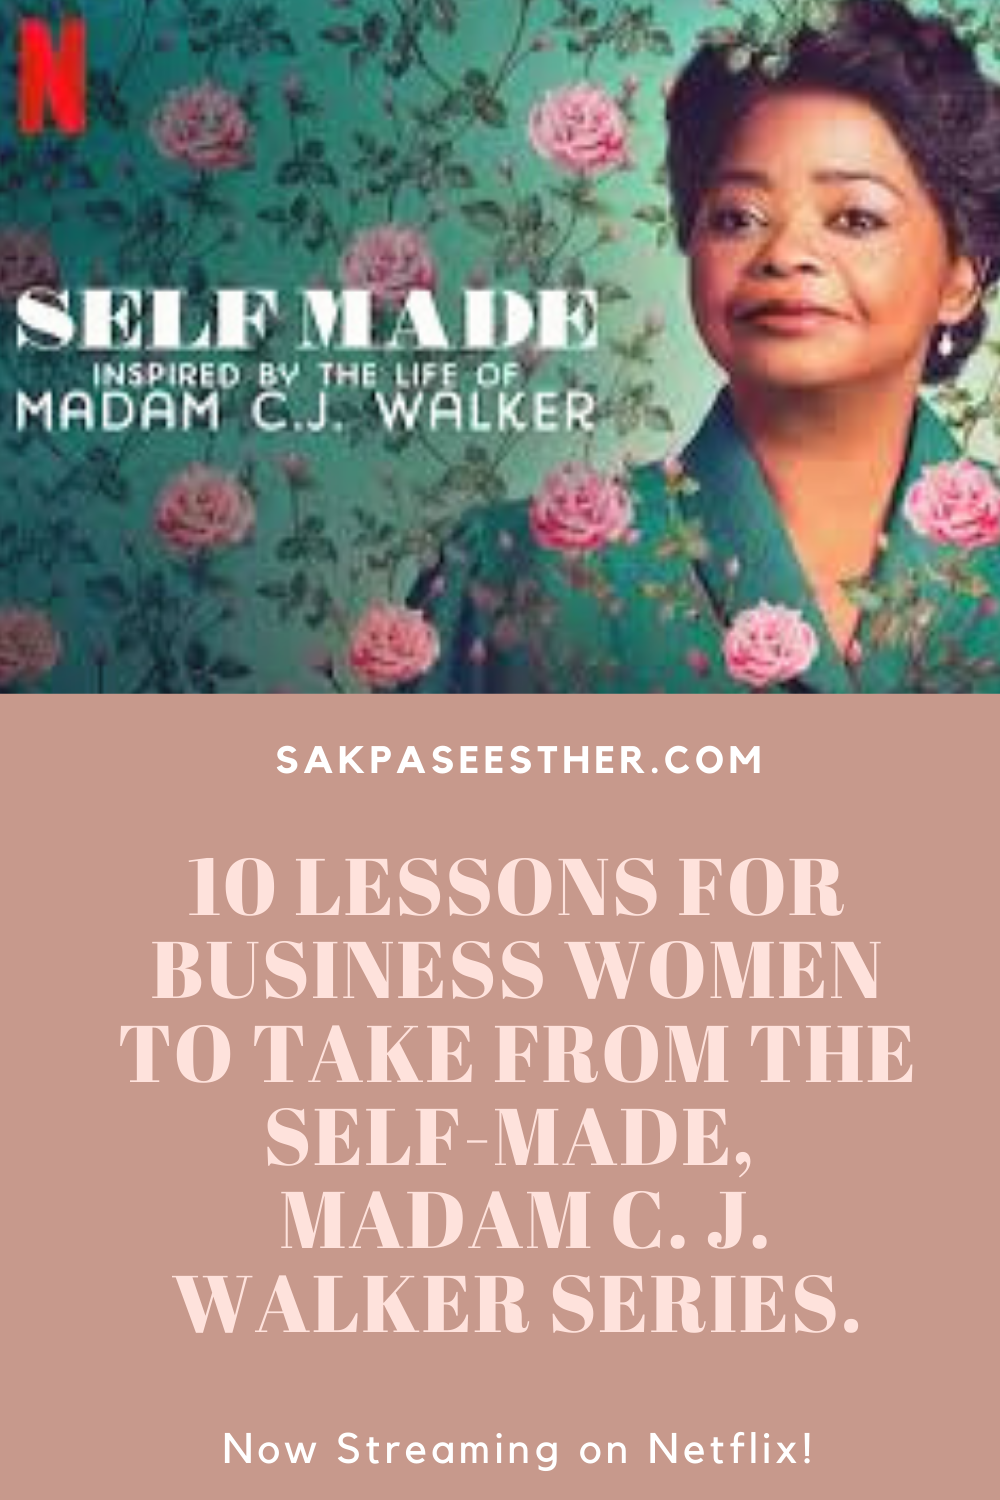 10 Lessons I learned from Madam C.J. Walker in 2020